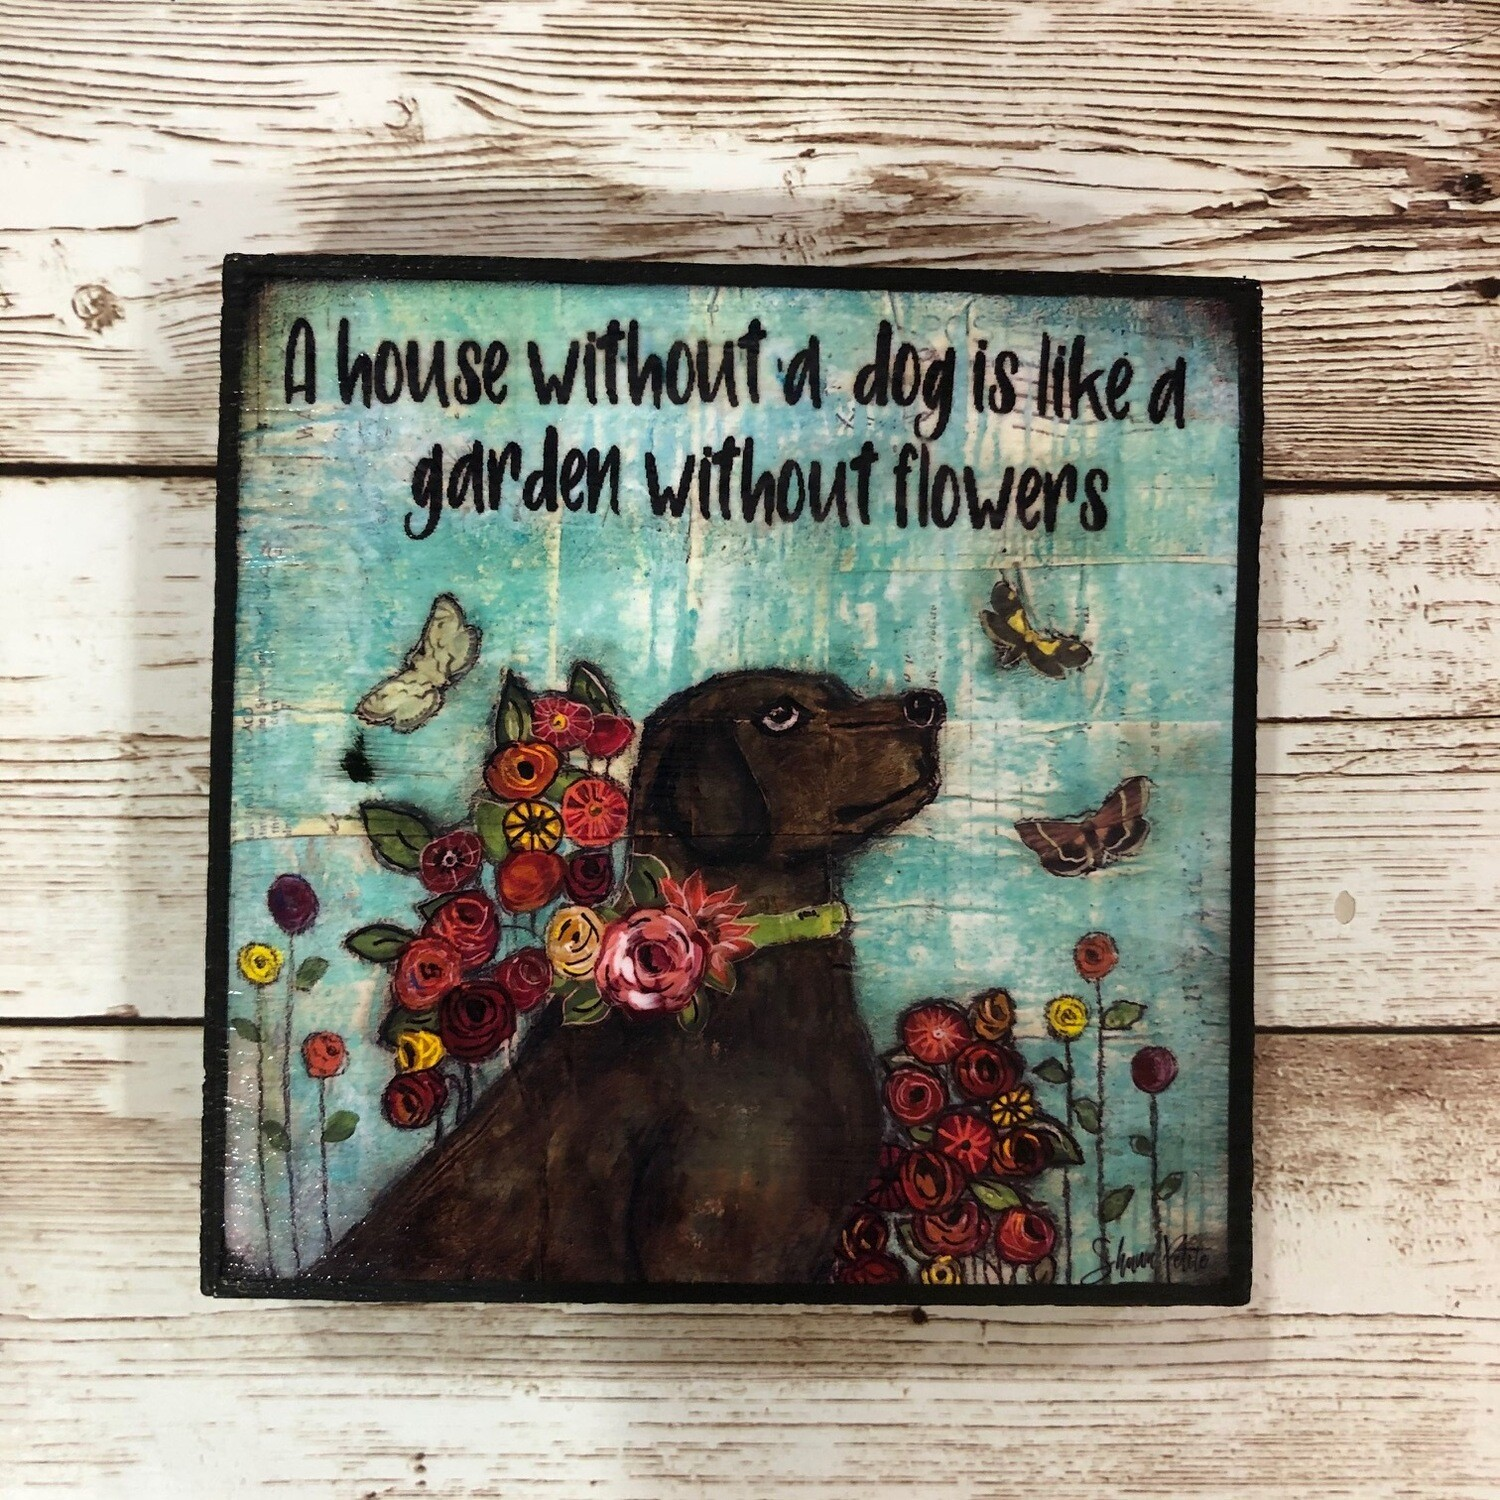 House Without A Dog Print on Wood 4x4 Clearance